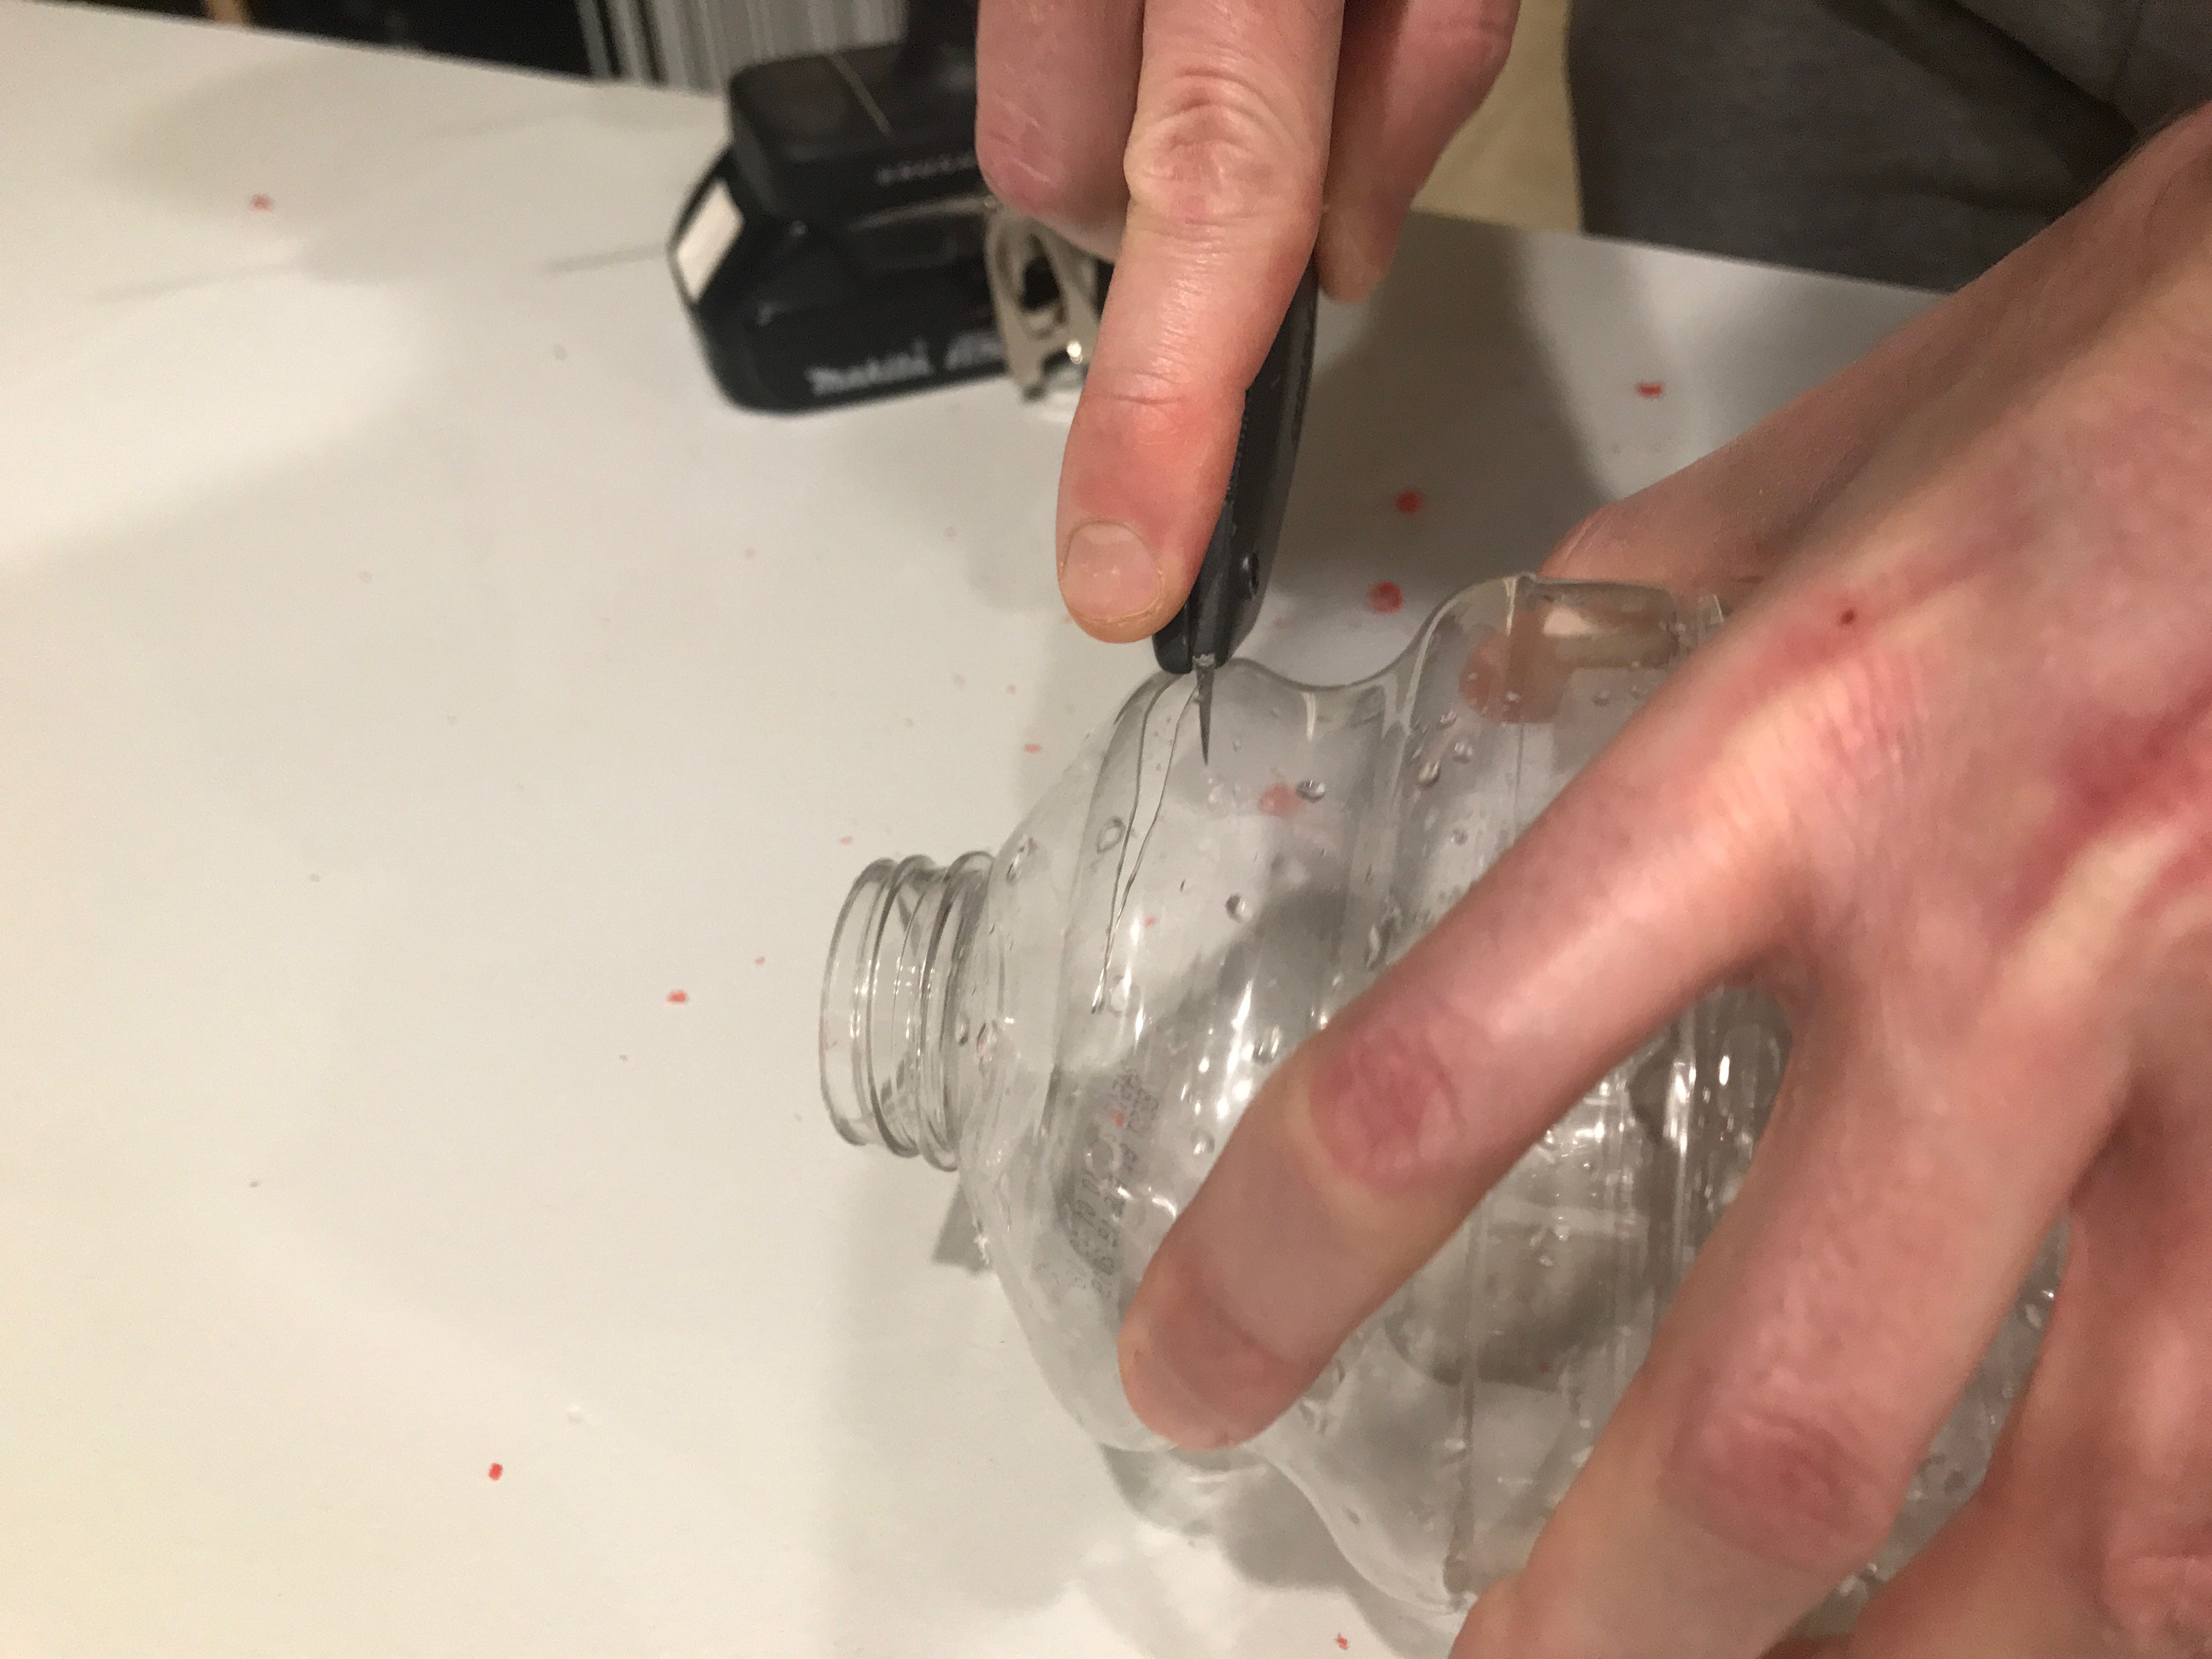 Bottle being cut with utility knife